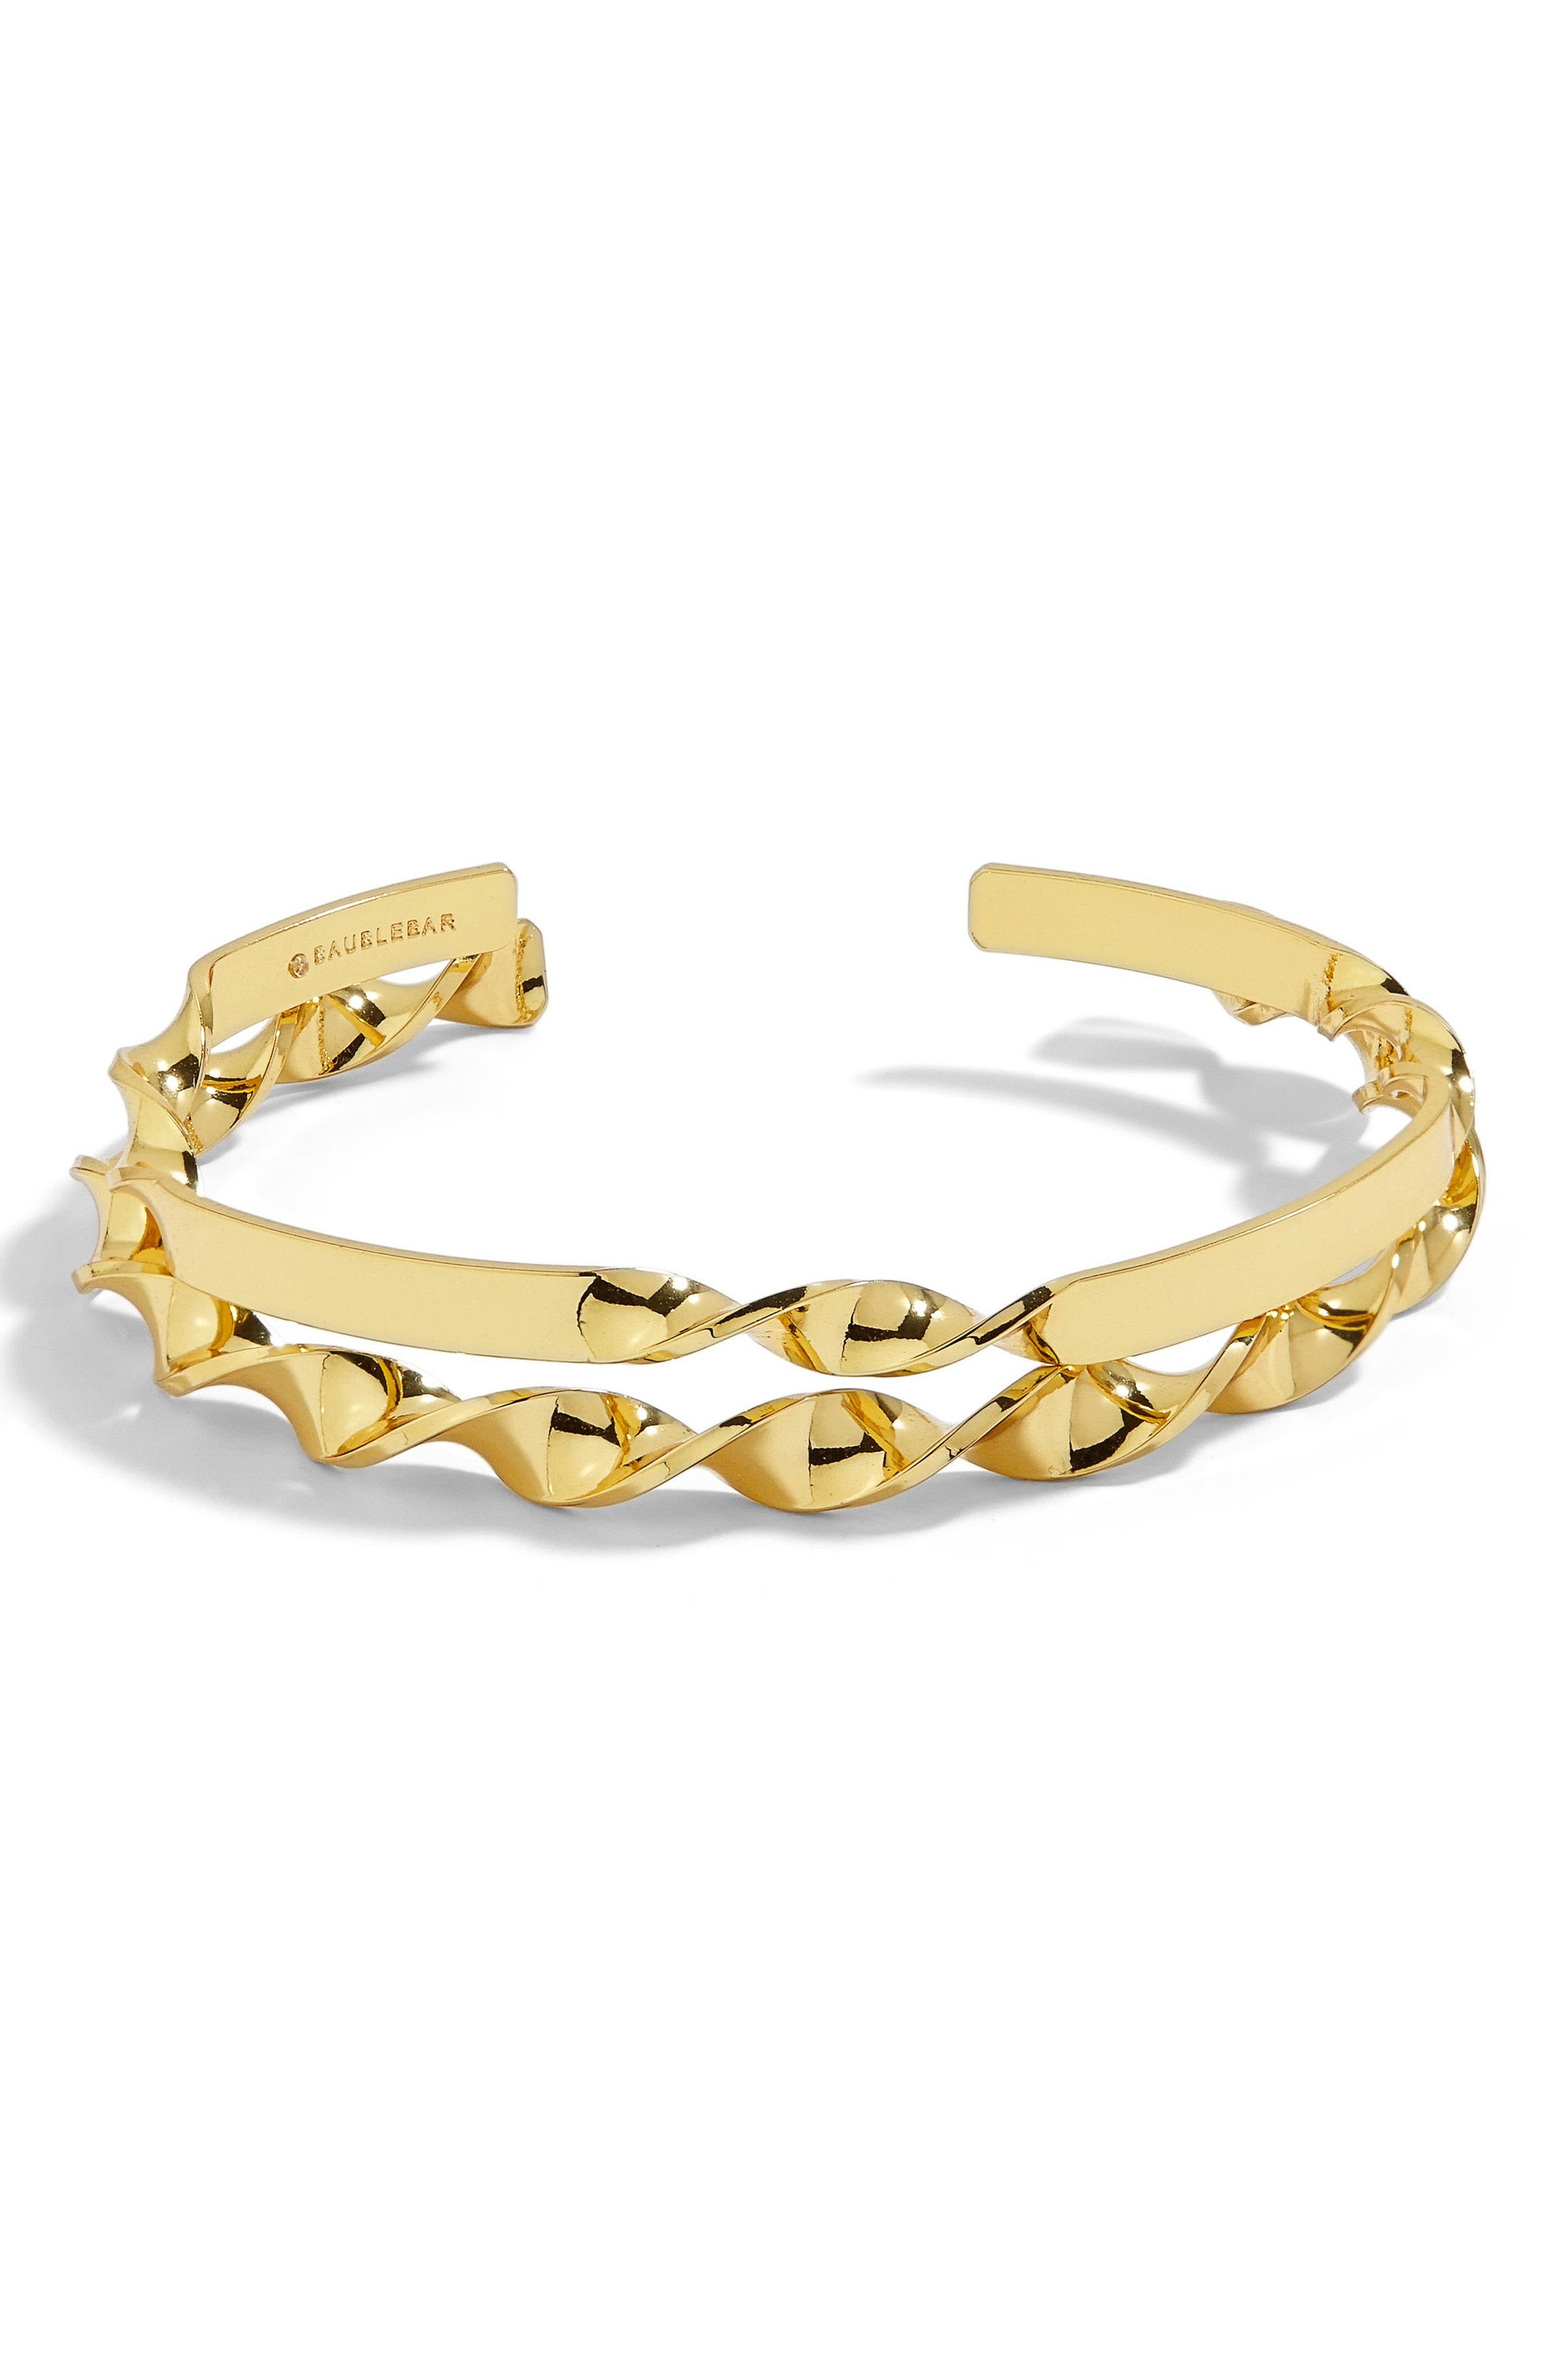 Narine Set of 2 Twisted Gold Cuff Bracelets,                             Main thumbnail 1, color,                             Gold